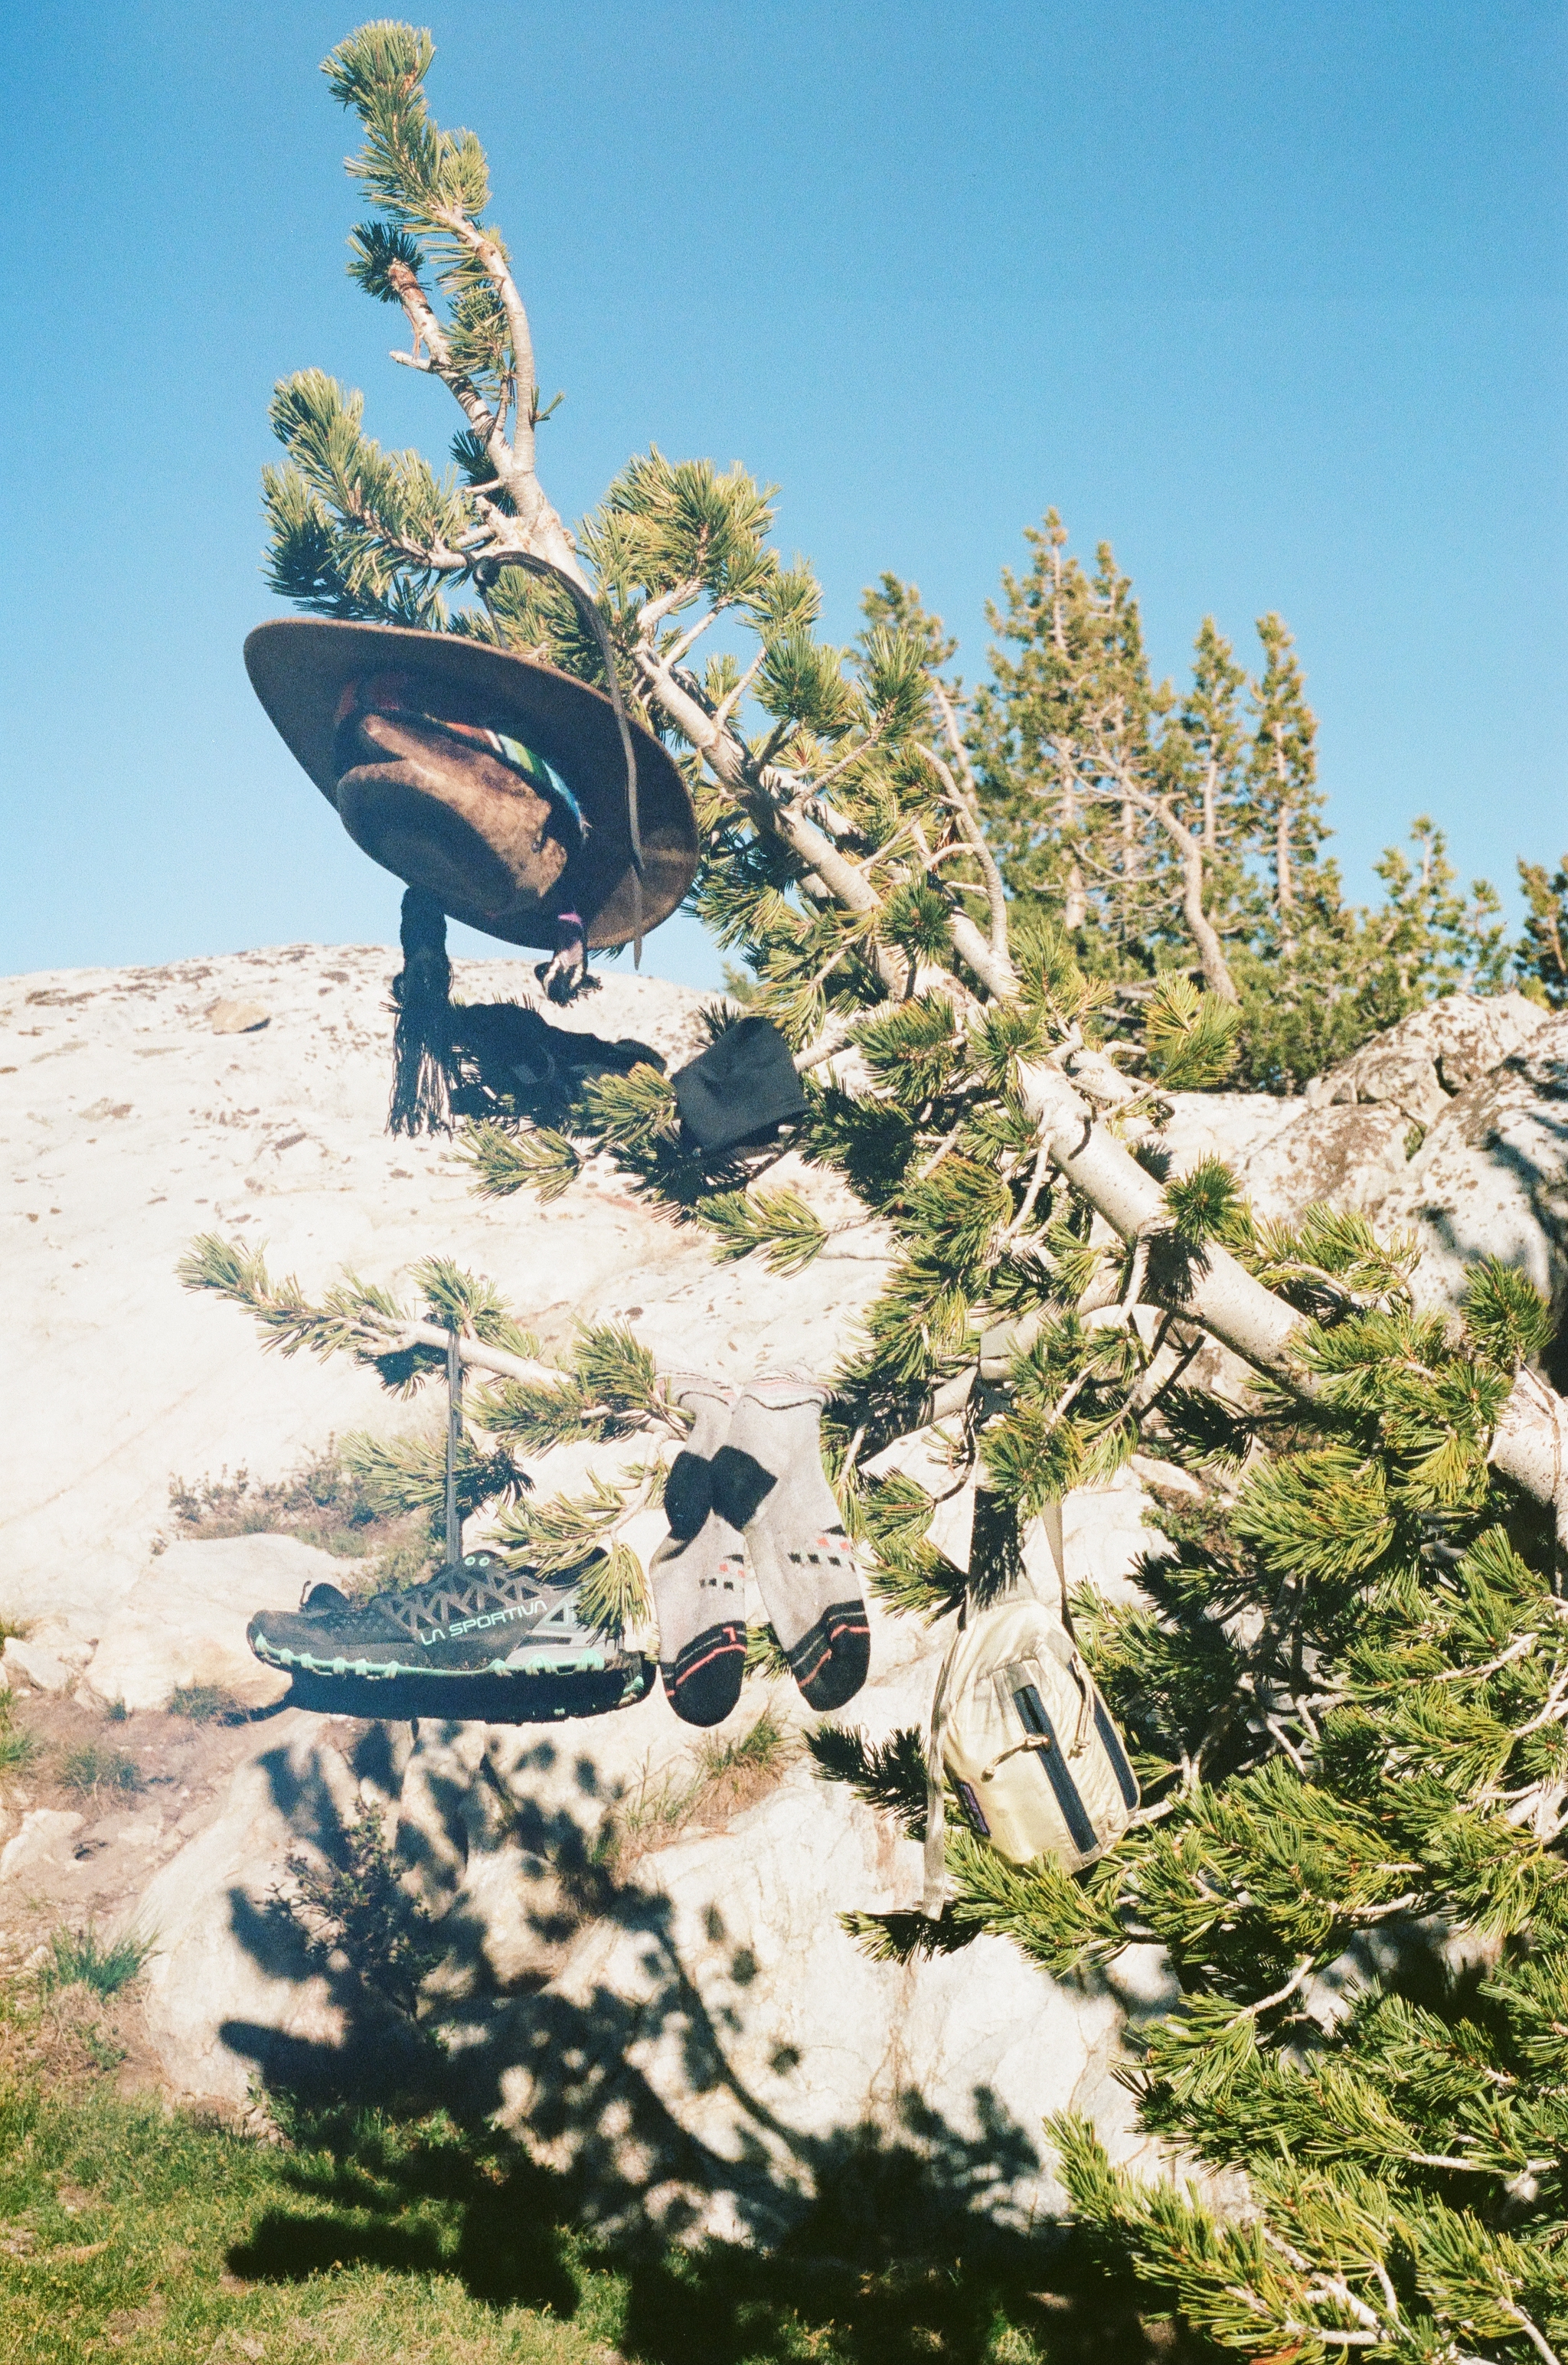 My gear drying out at camp, 35mm film